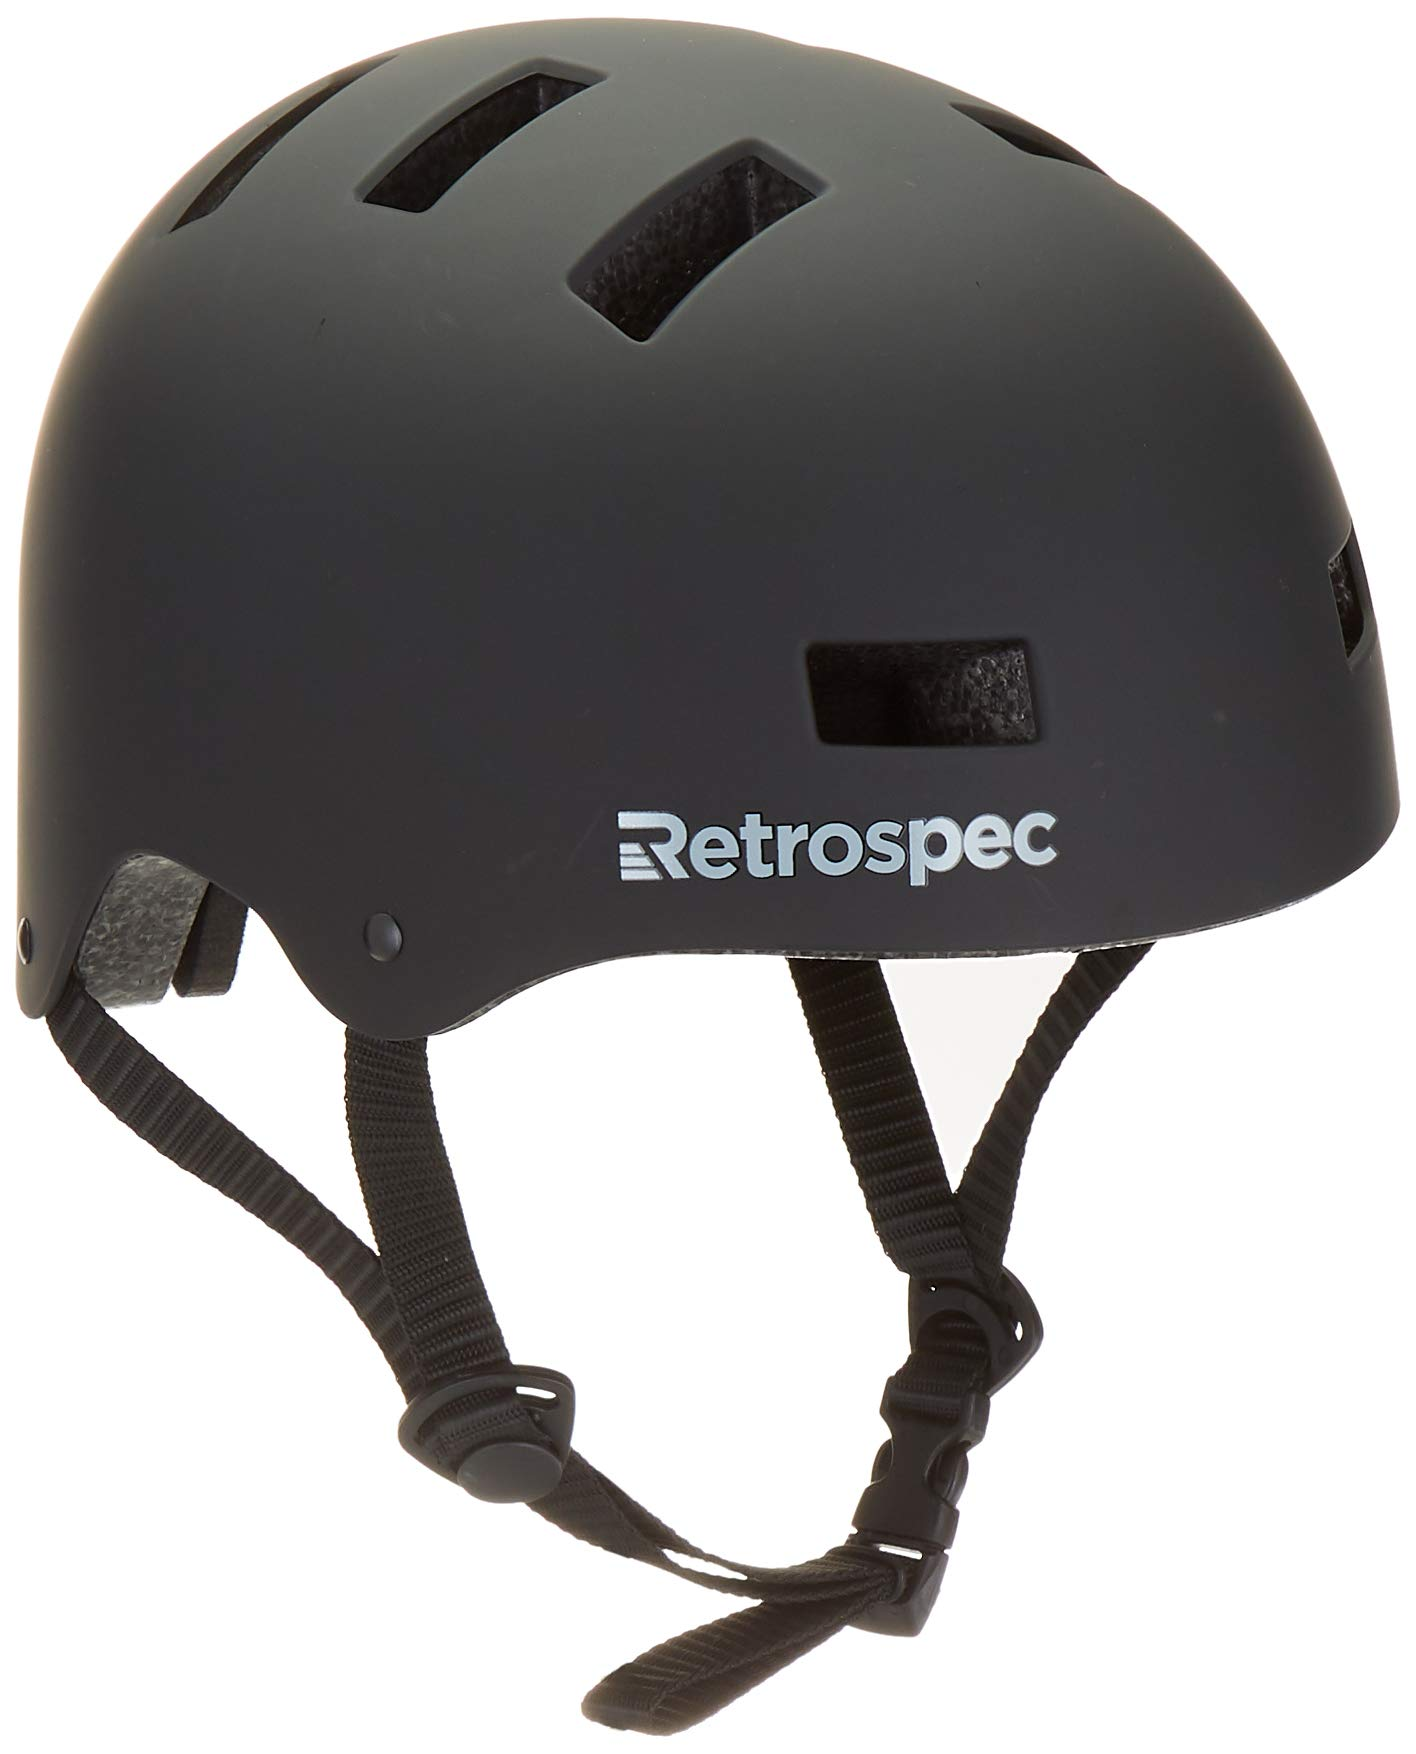 Retrospec cm-1 Bicycle/Skateboard Helmet for Adult CPSC Certified Commuter, Bike, Skate by Retrospec